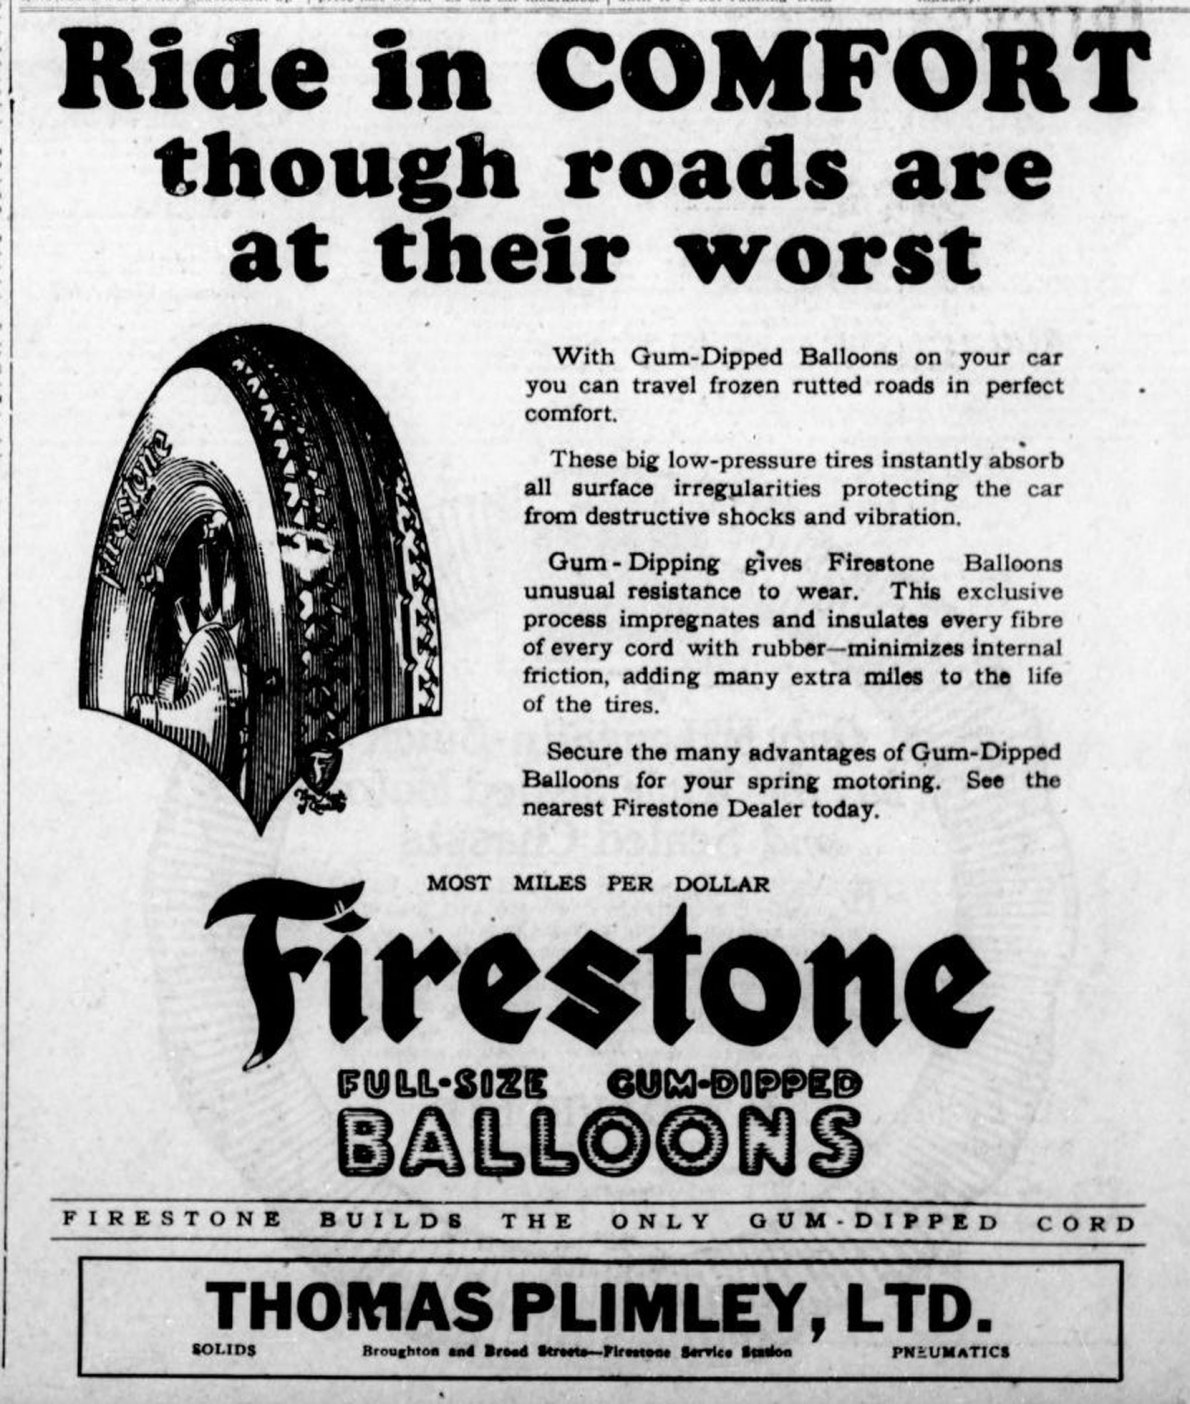 1926 advertisement for Firestone tires, sold at Thomas Plimley Ltd, Broughton Street at Broad Street. (Victoria Online Sightseeing Tours collection)